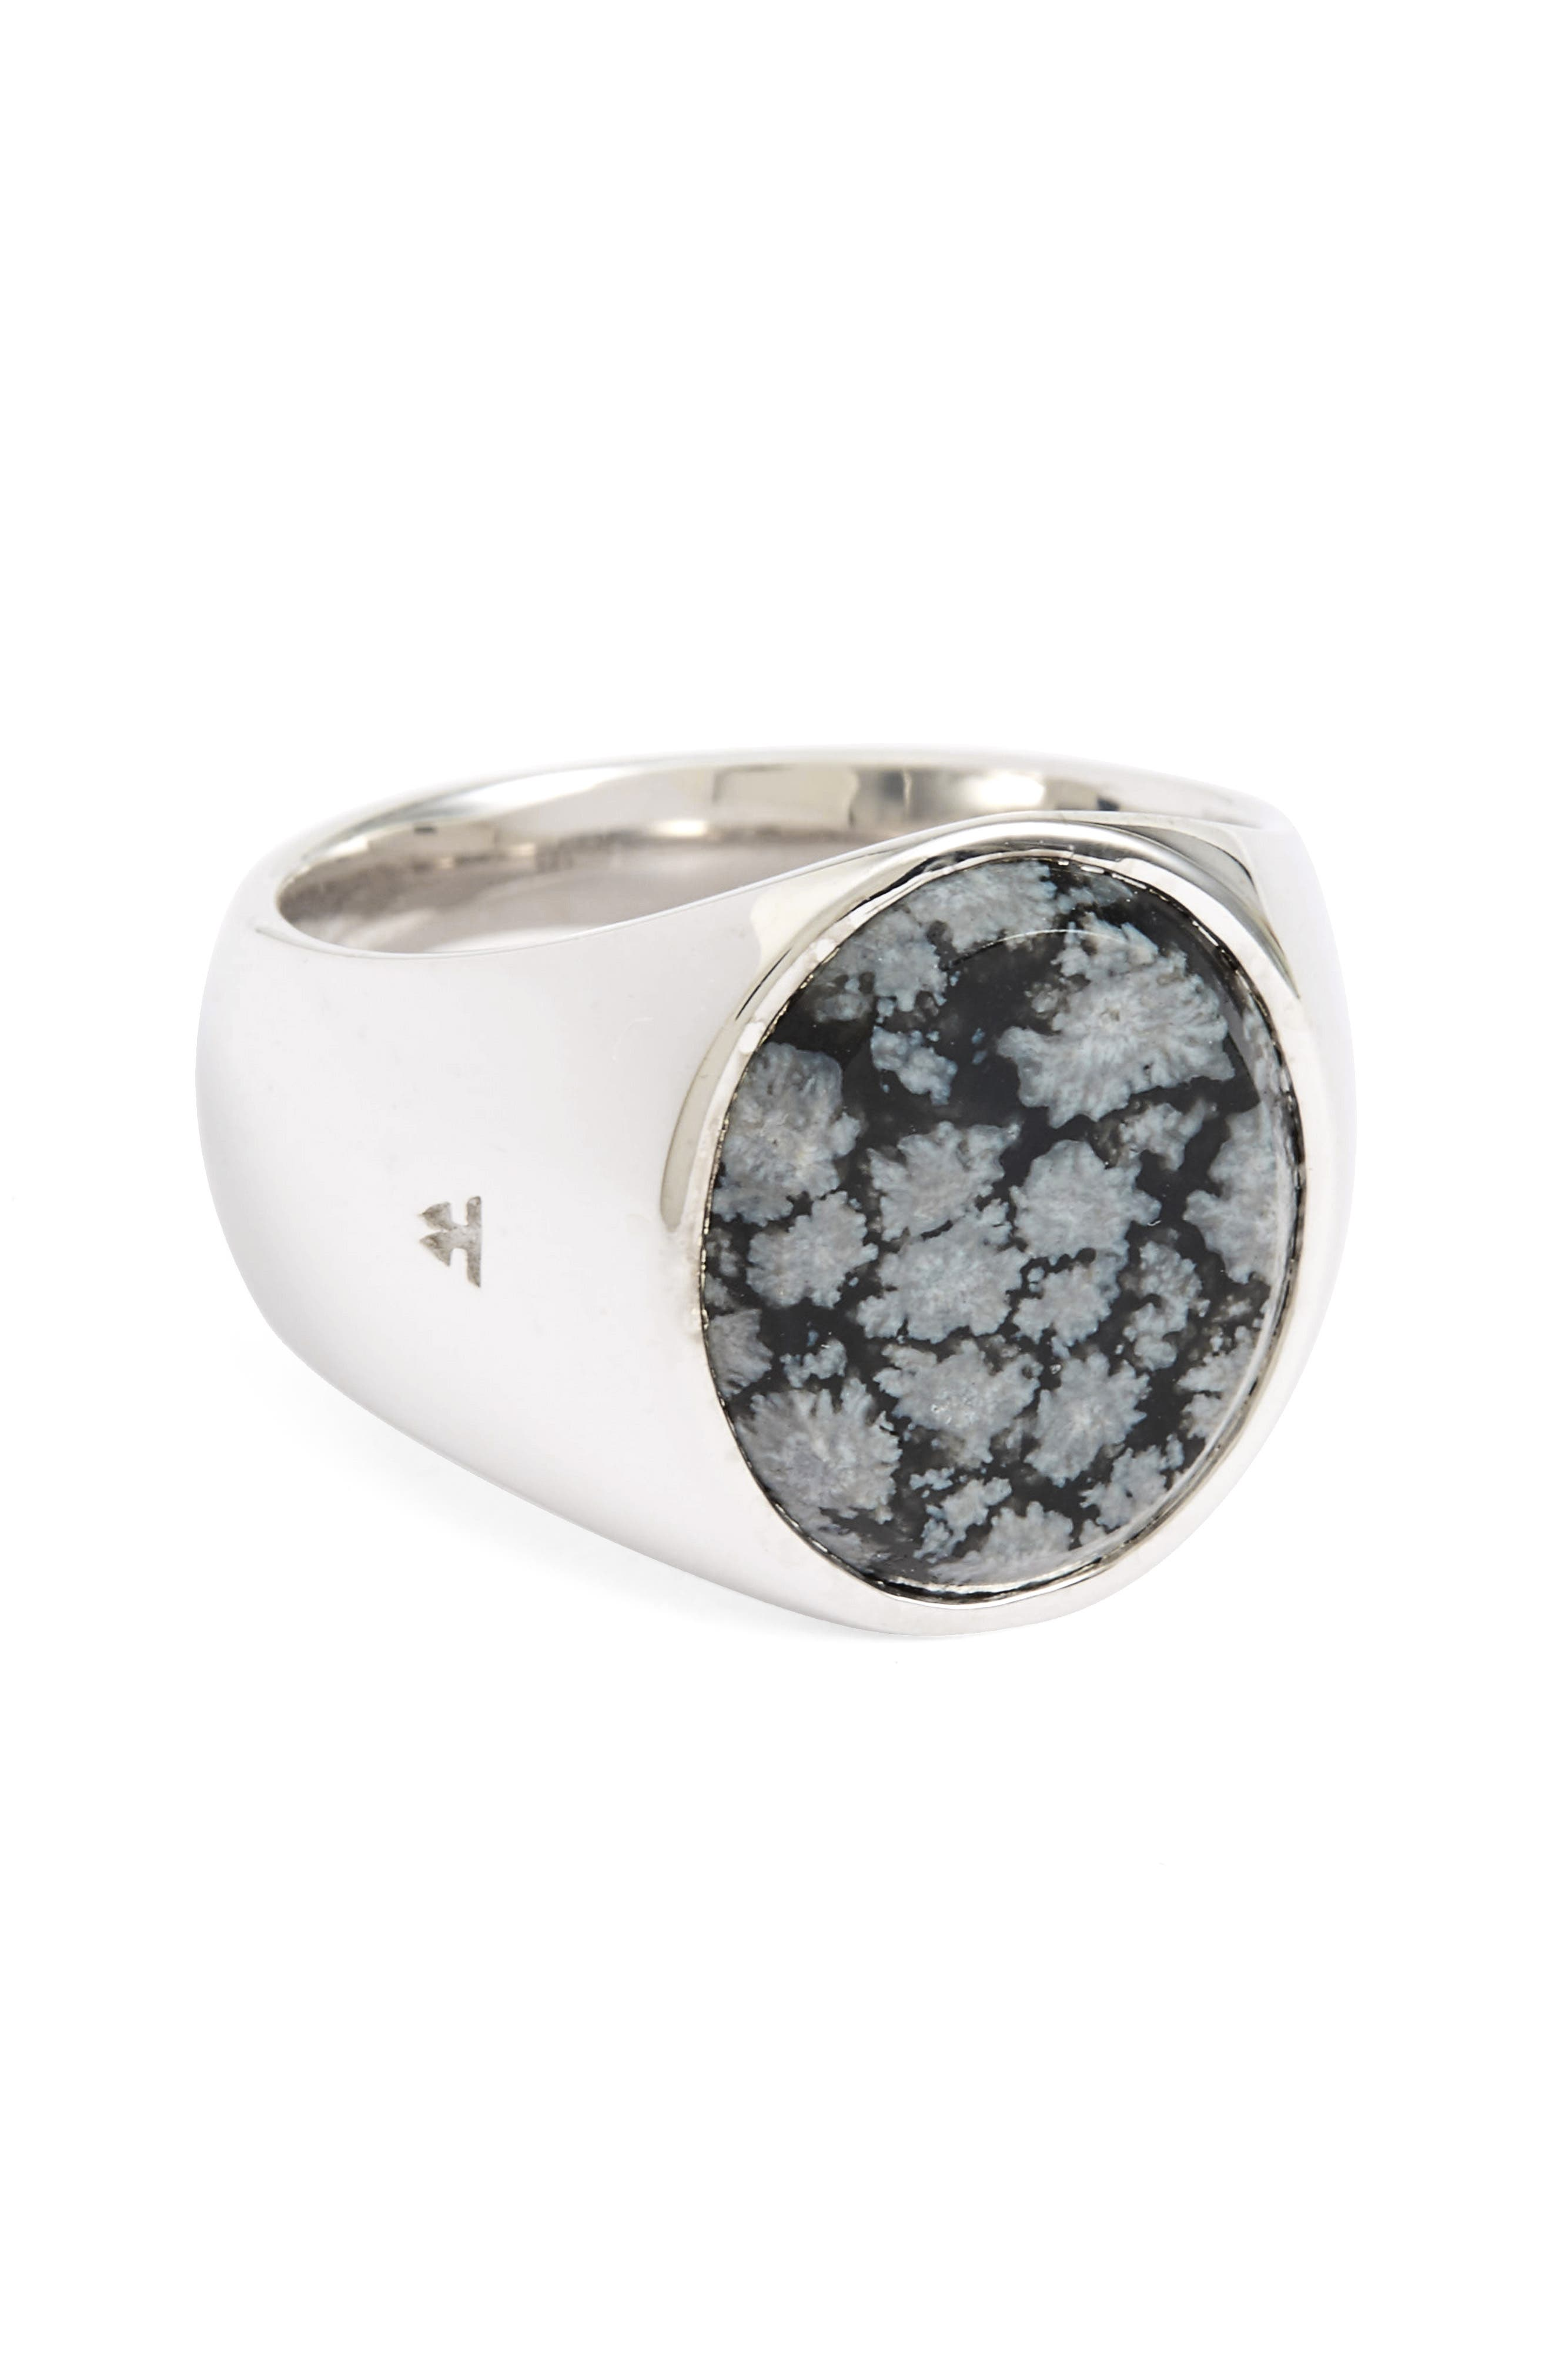 Snowflake Obsidian Oval Signet Ring,                             Alternate thumbnail 2, color,